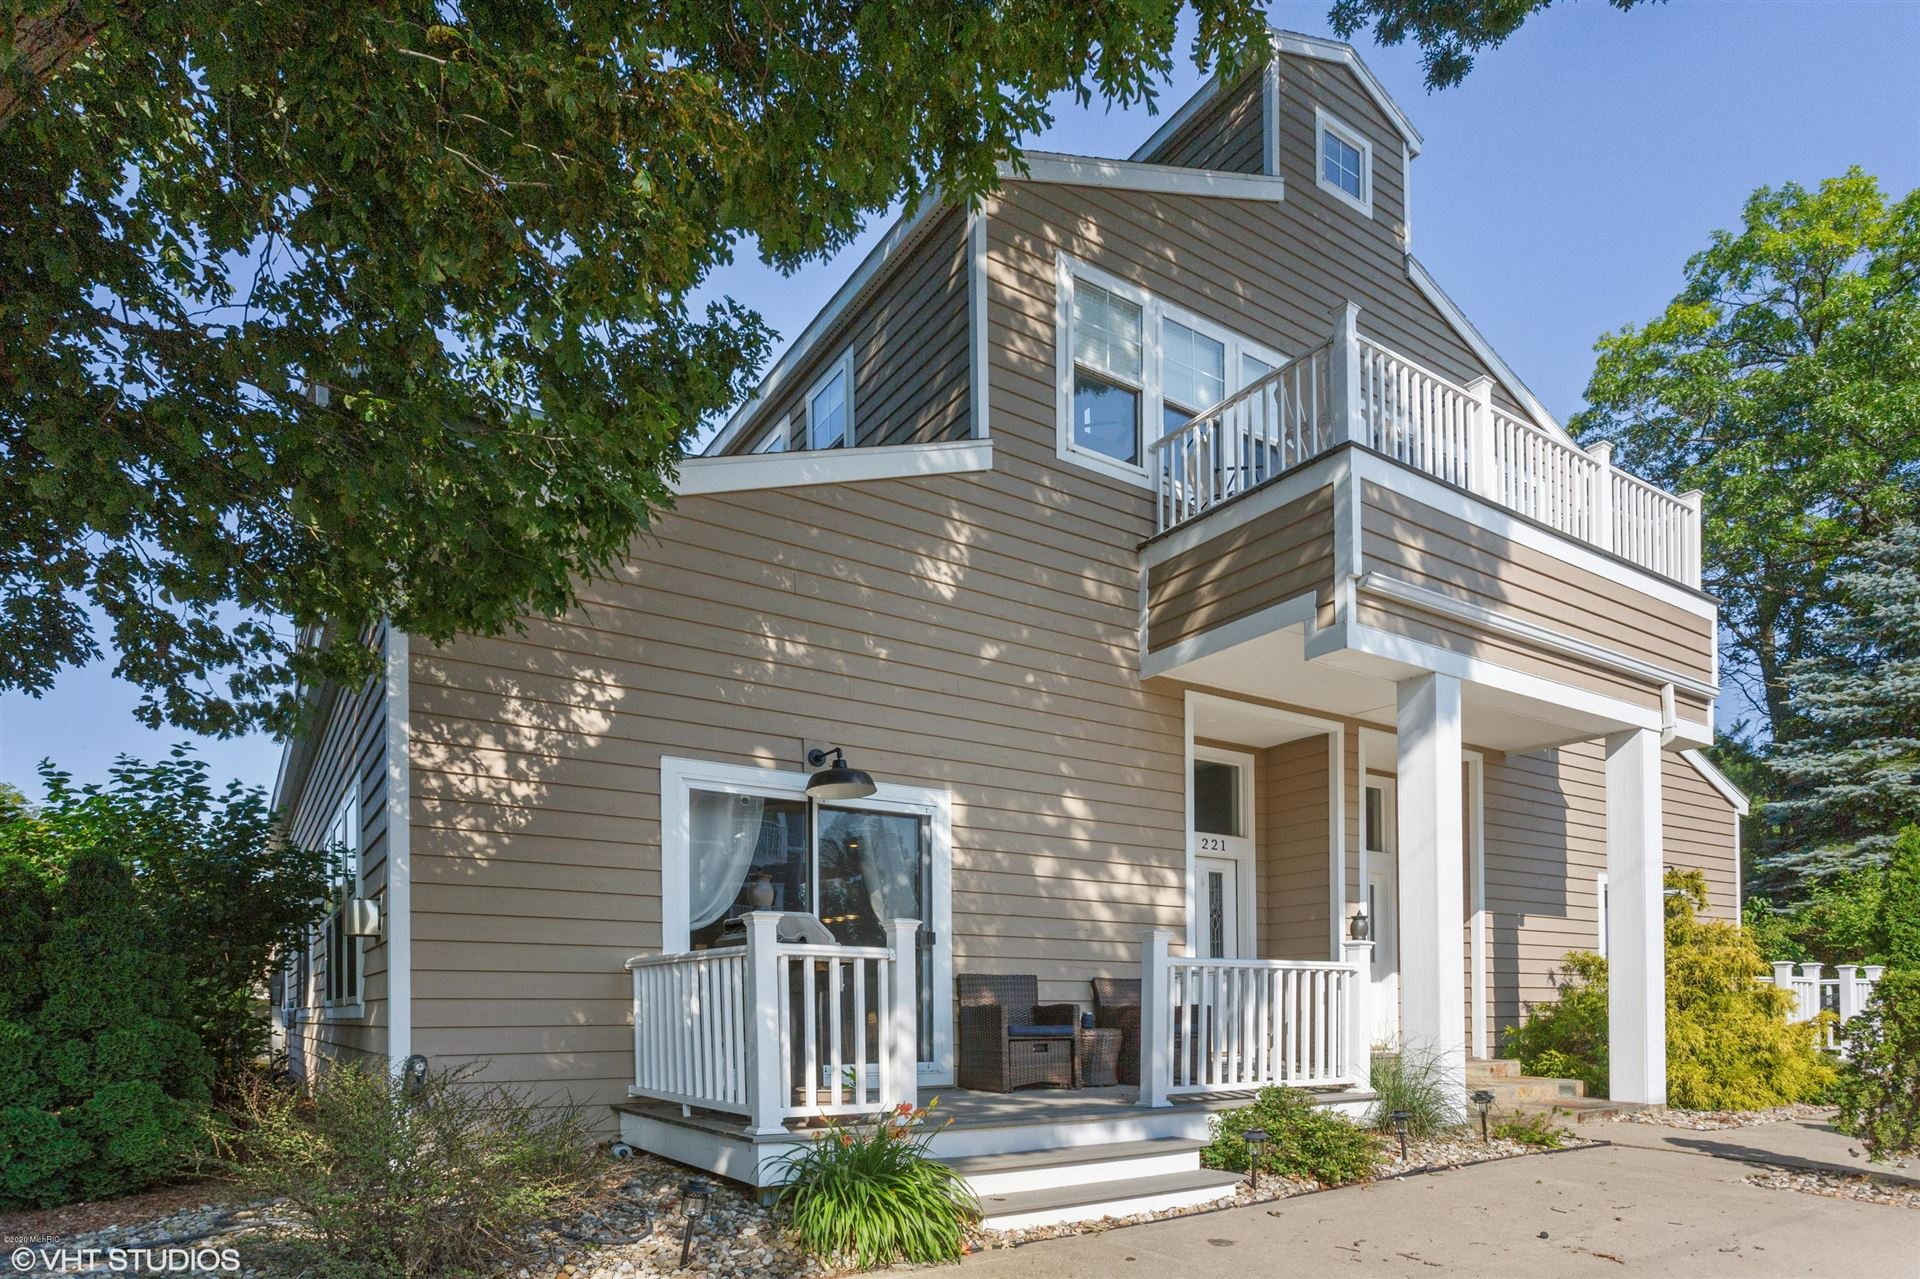 221 N Townsend Street, New Buffalo, MI 49117 - MLS#: 21010910